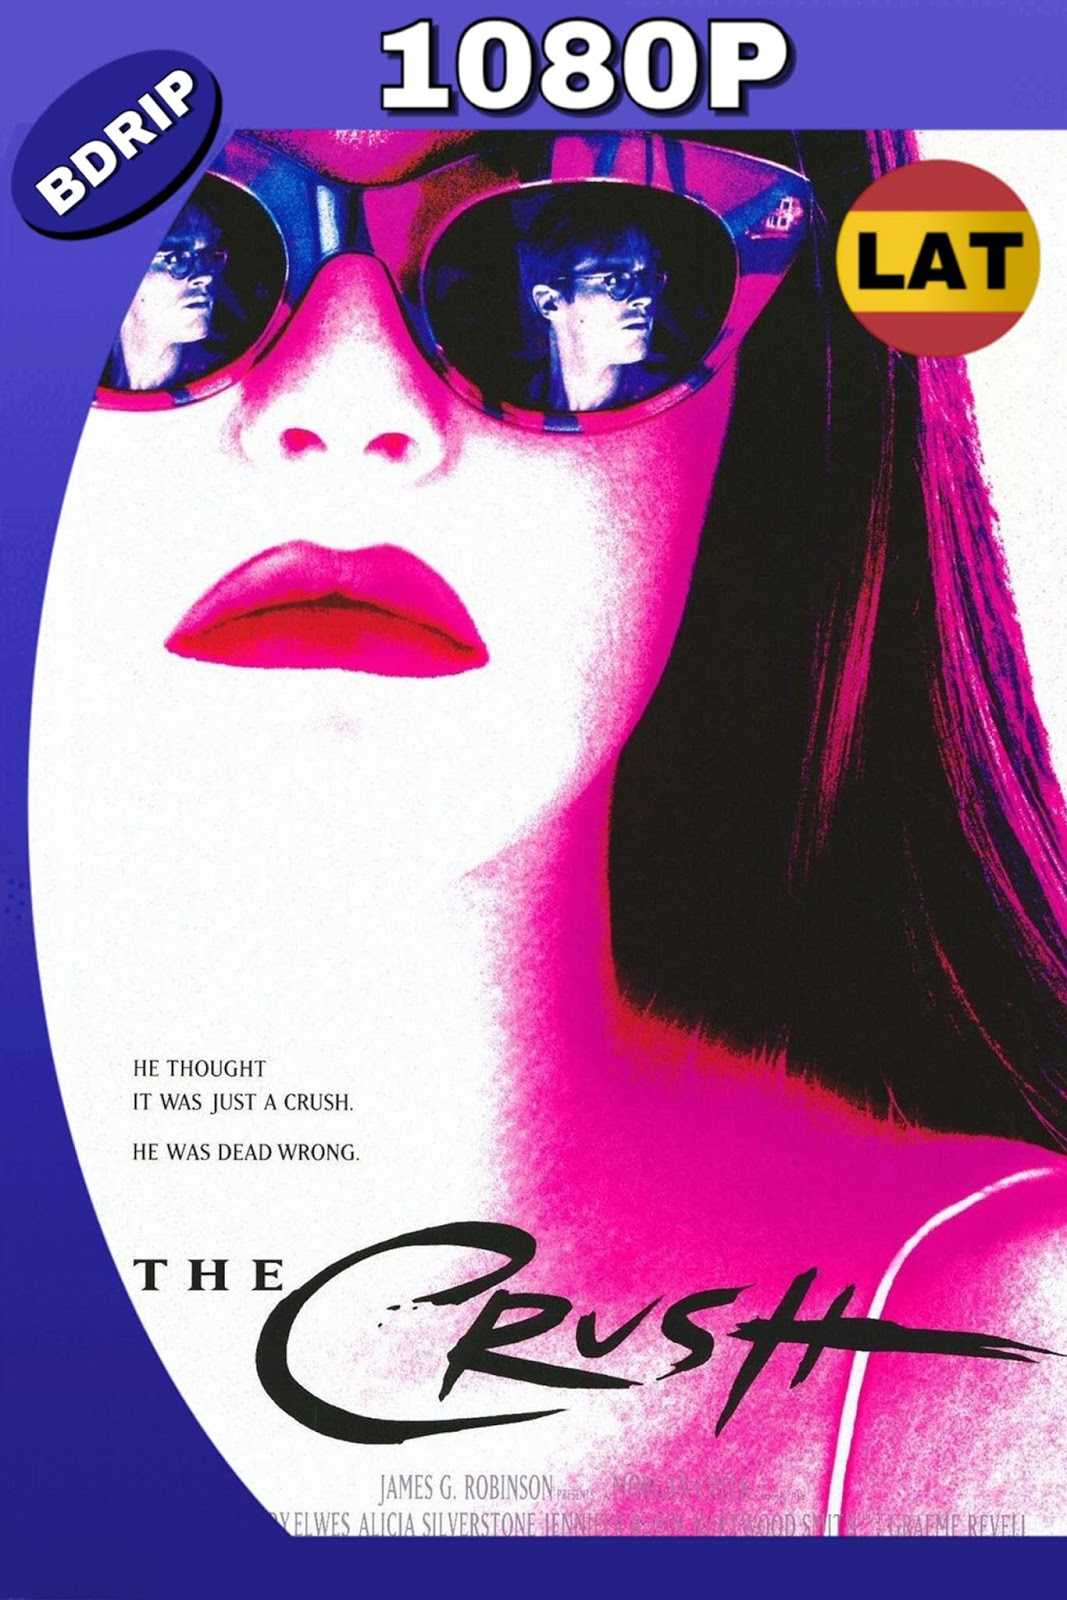 THE CRUSH 1993 LAT-ING HD BDRIP 1080P 7GB.mkv